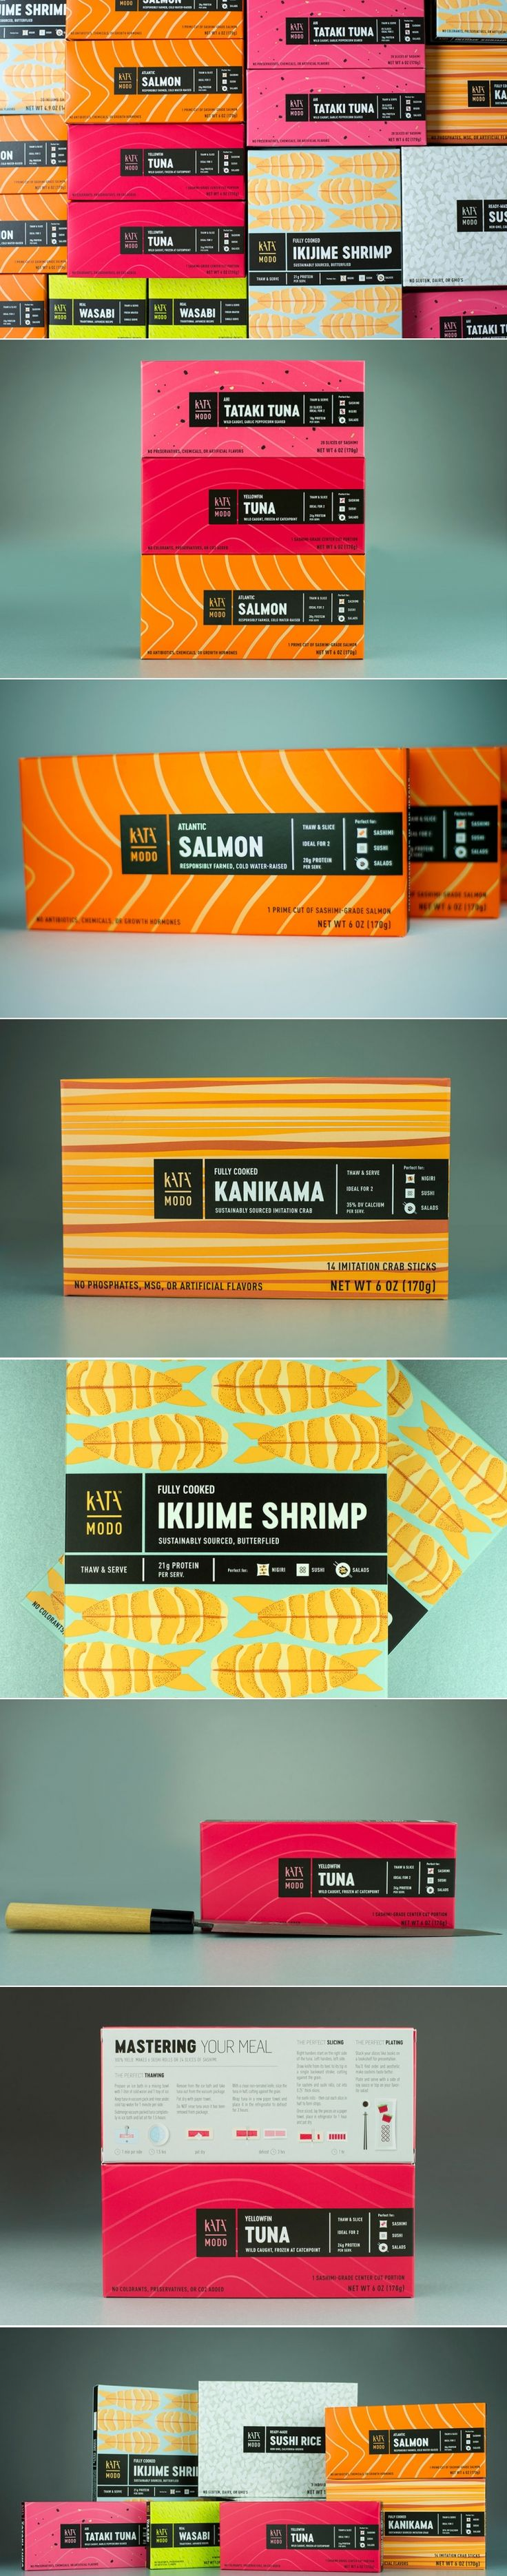 Make Your Own Sushi Like a Pro With KataModo — The Dieline | Packaging & Branding Design & Innovation News